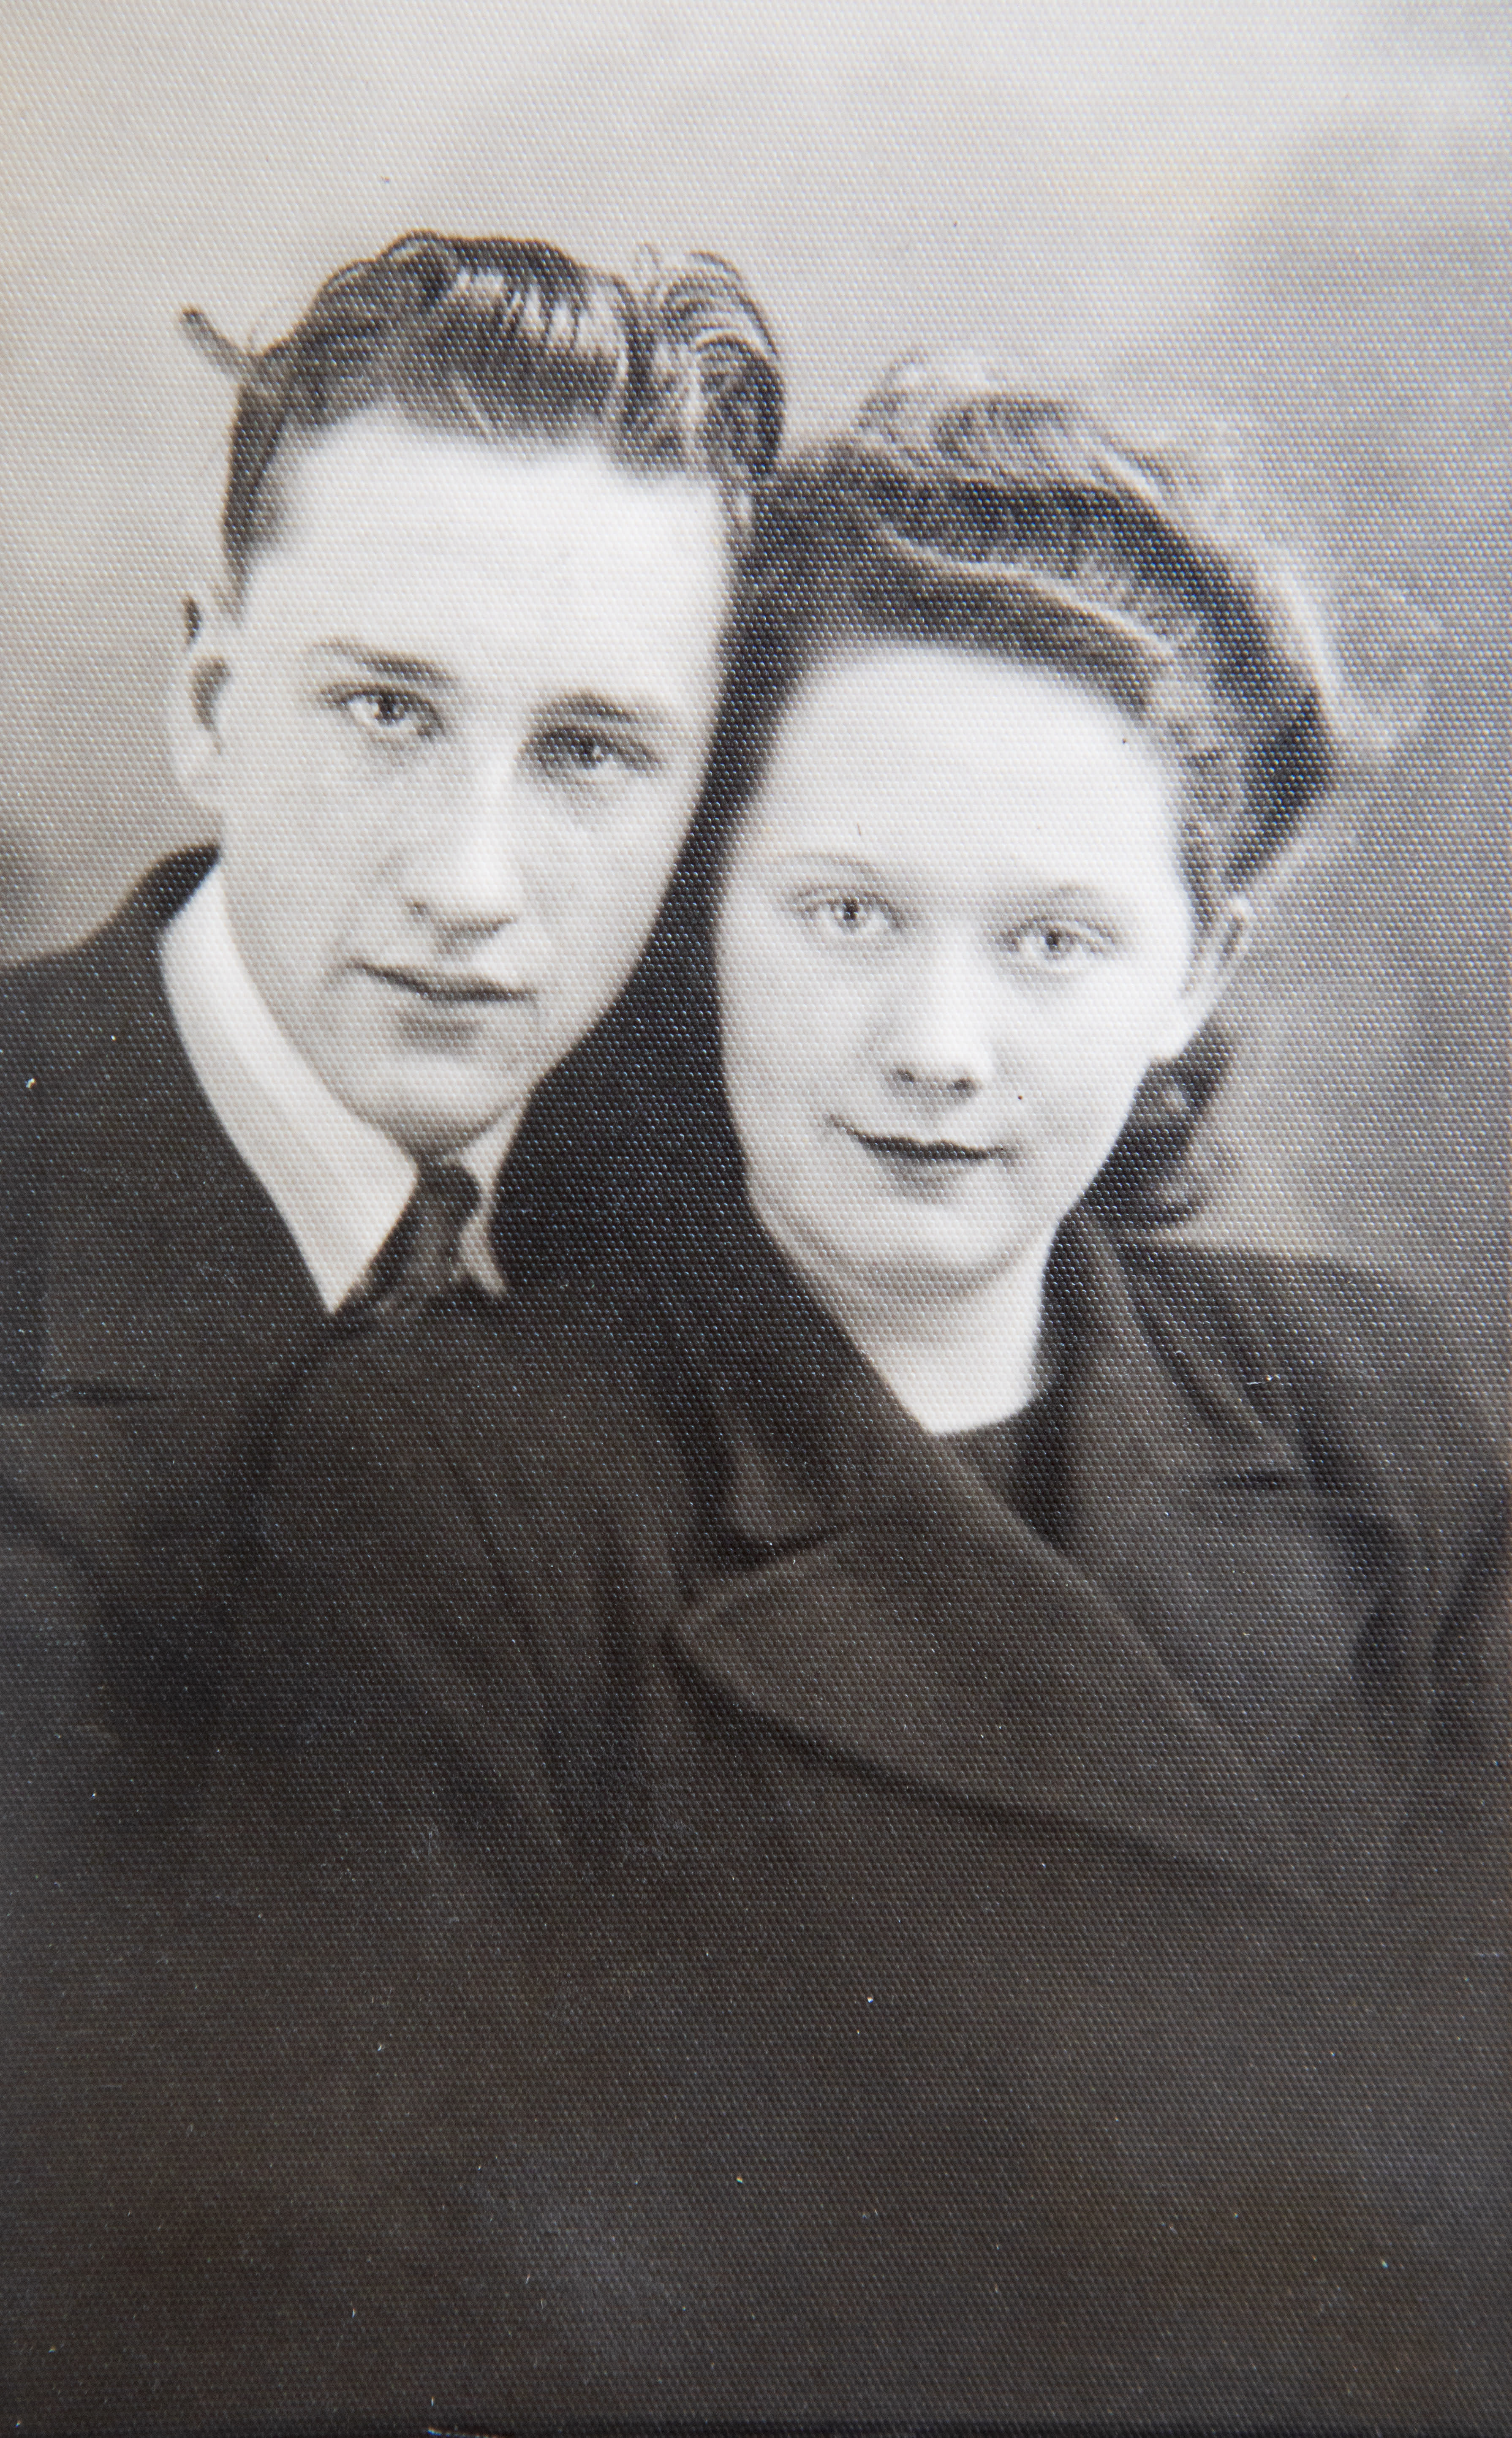 Robert, 93, and Alison Snaddon, 91, met when they were 15 and 17. [Photo: SWNS]